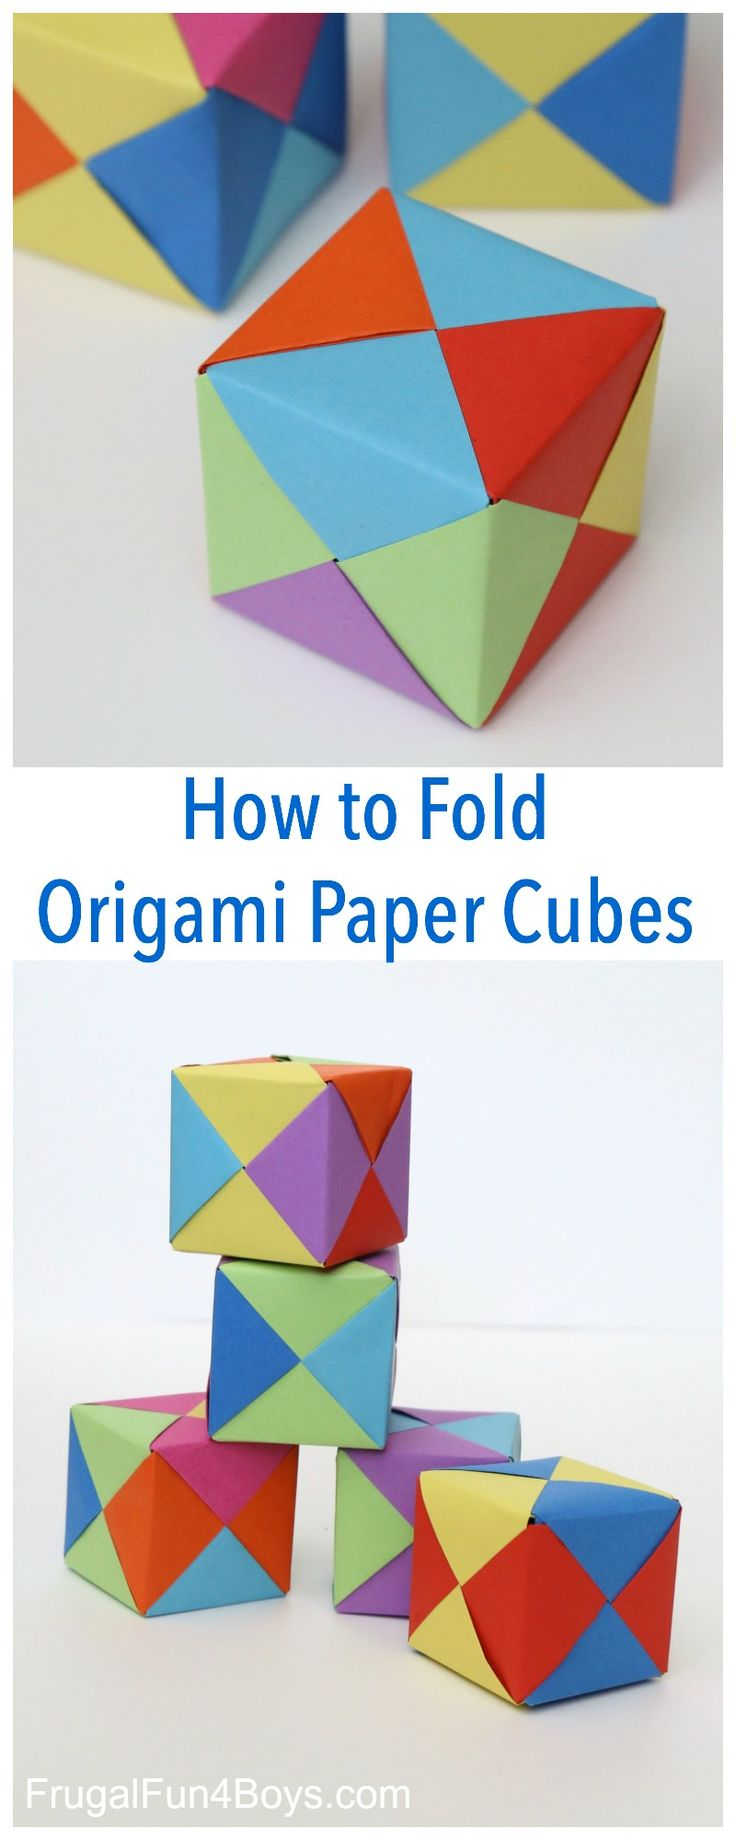 How to Fold Origami Paper Cubes